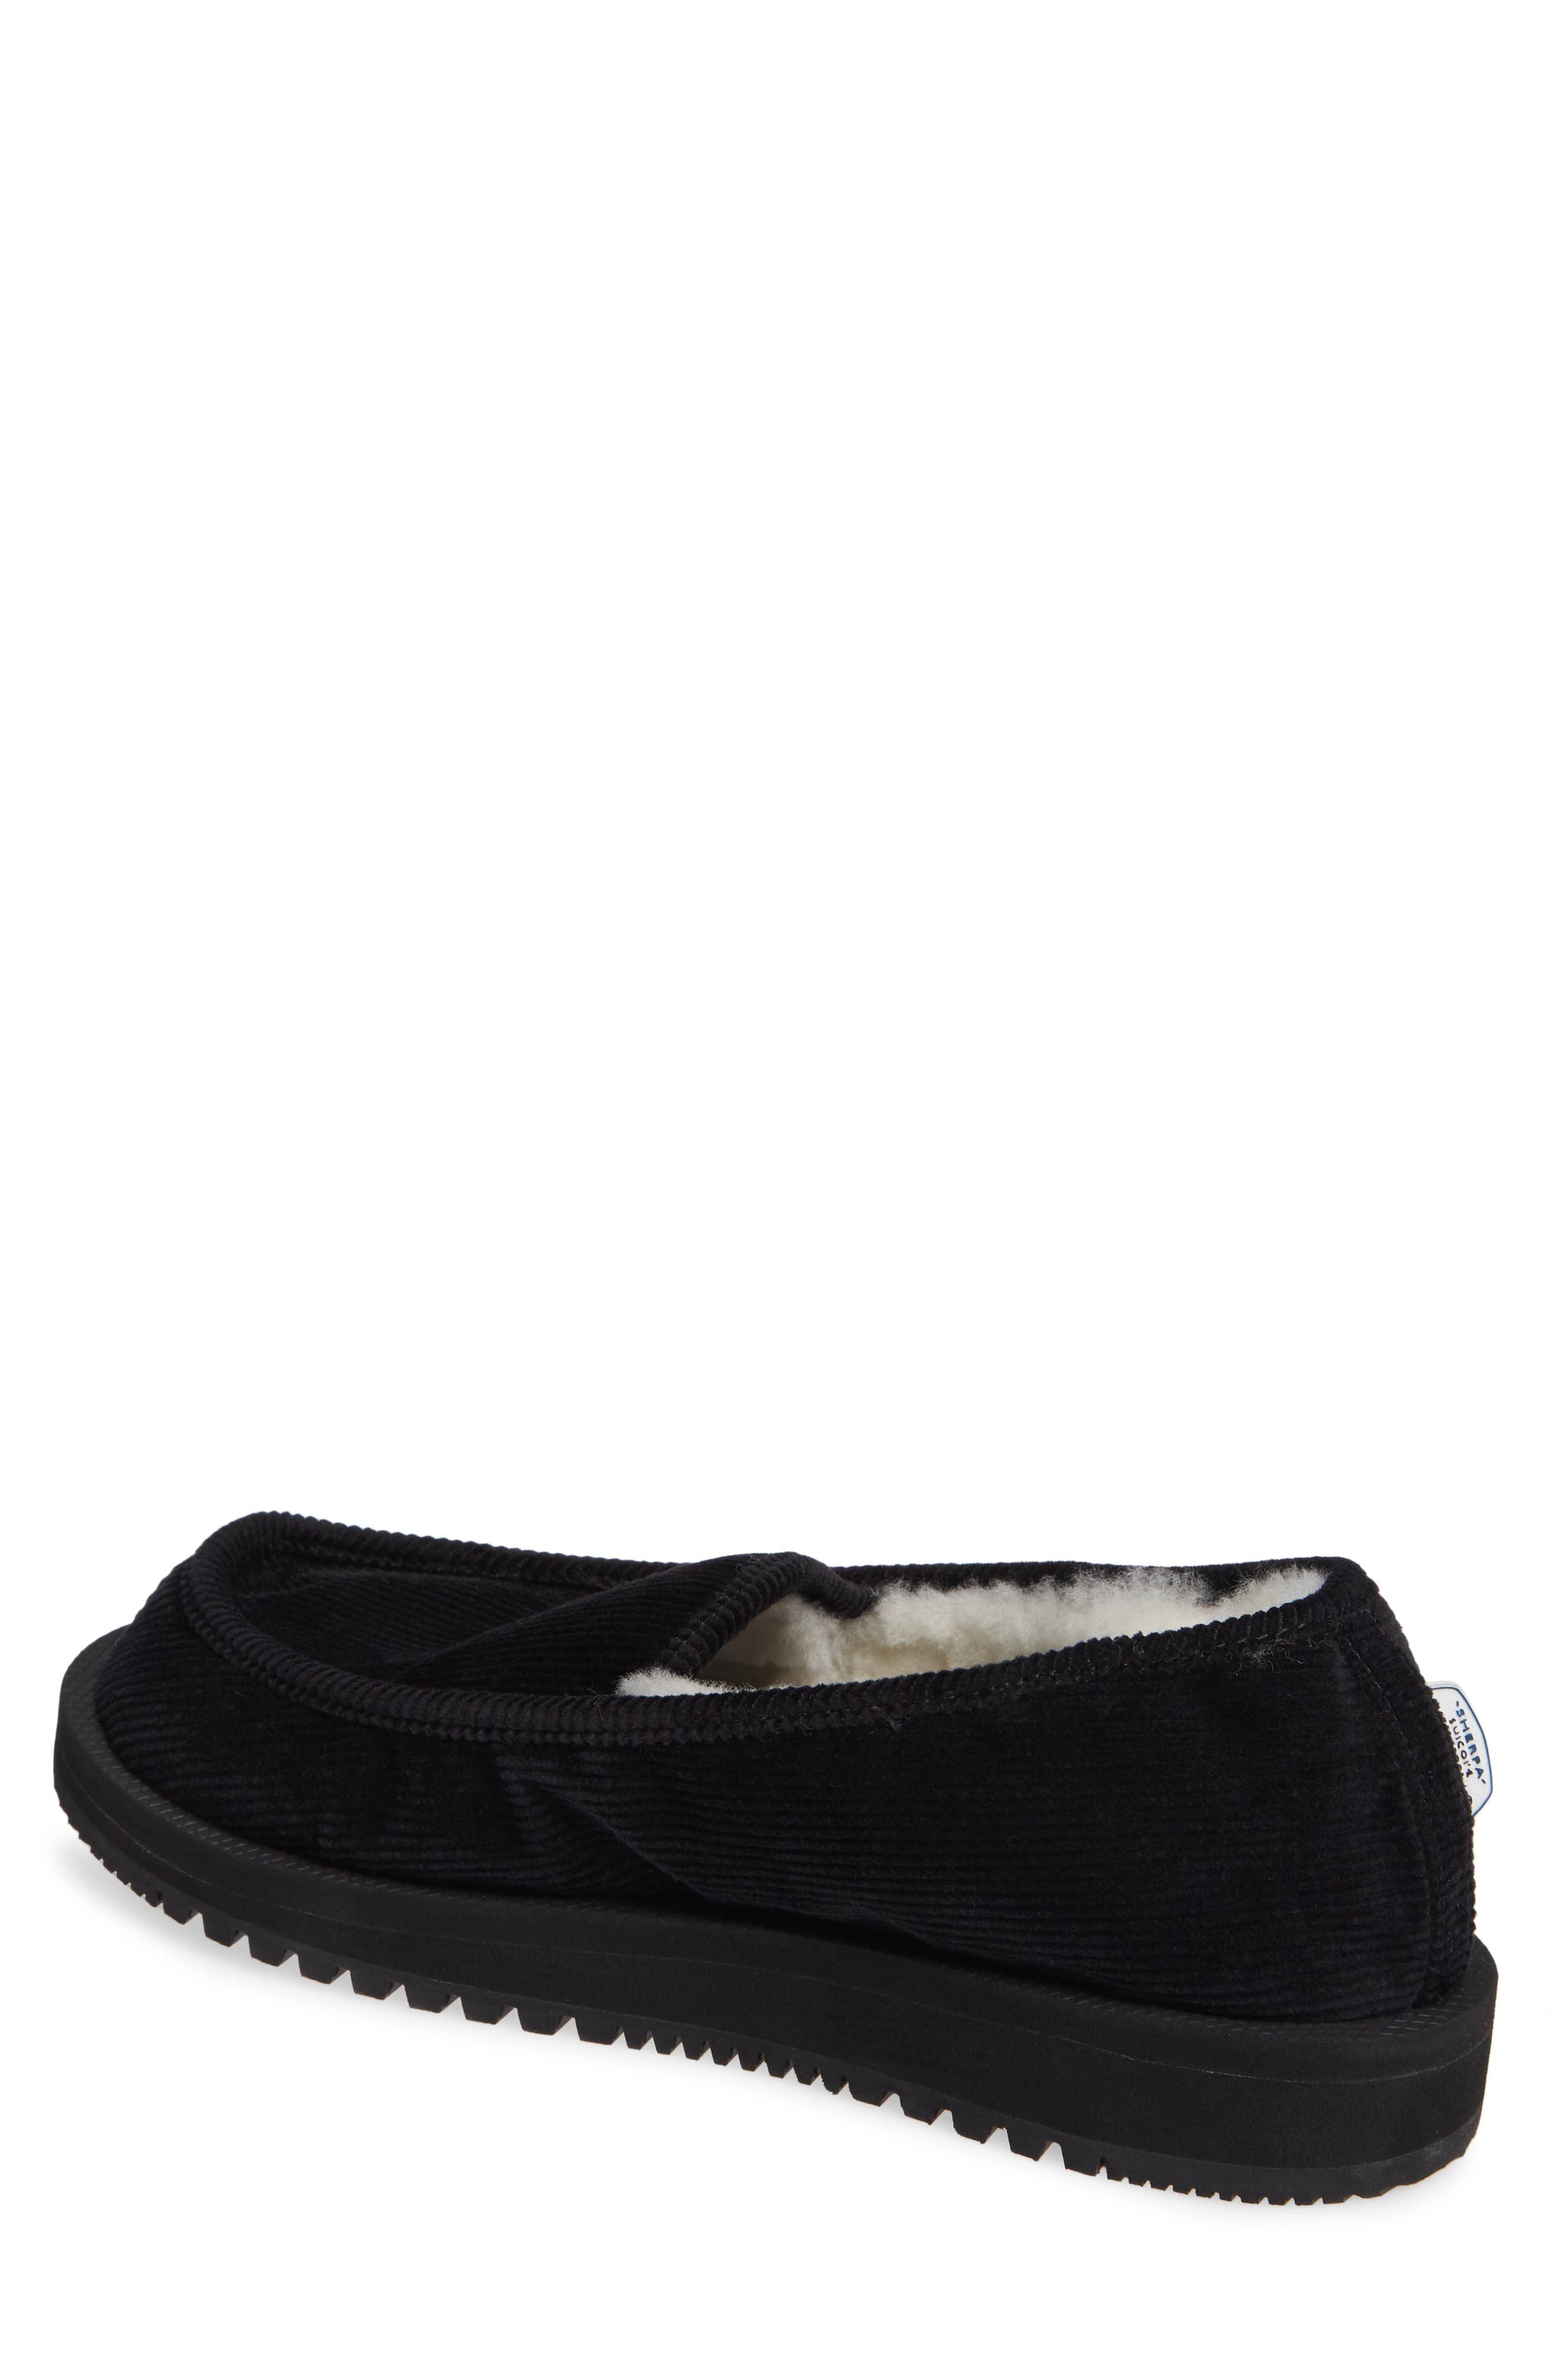 Genuine Shearling Slipper,                             Alternate thumbnail 2, color,                             001